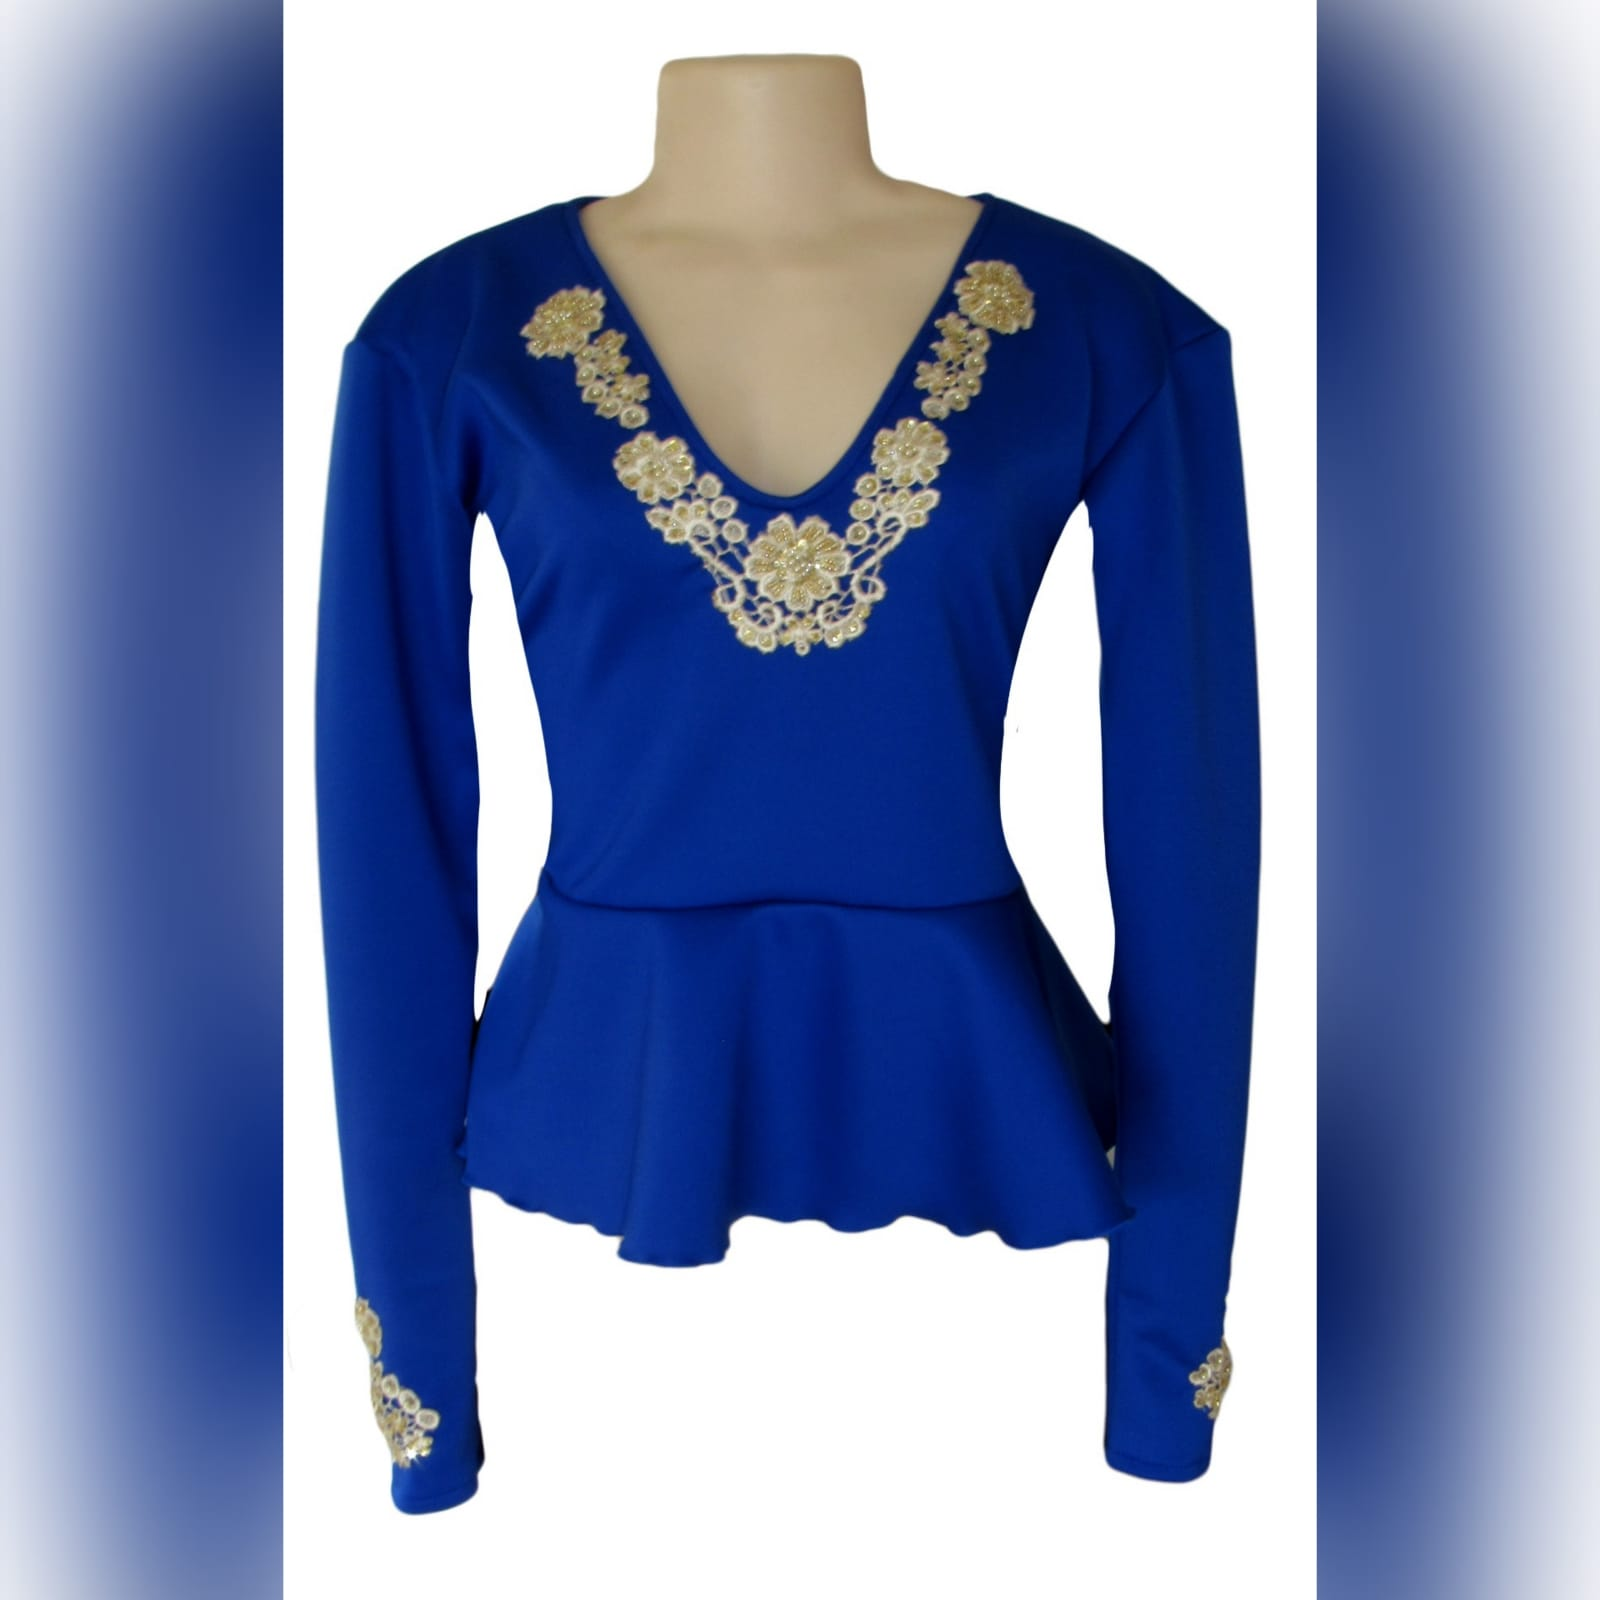 Royal blue & gold peplum smart casual top 1 royal blue & gold peplum smart casual top, long sleeves, v neckline & cuffs detailed with gold beaded lace